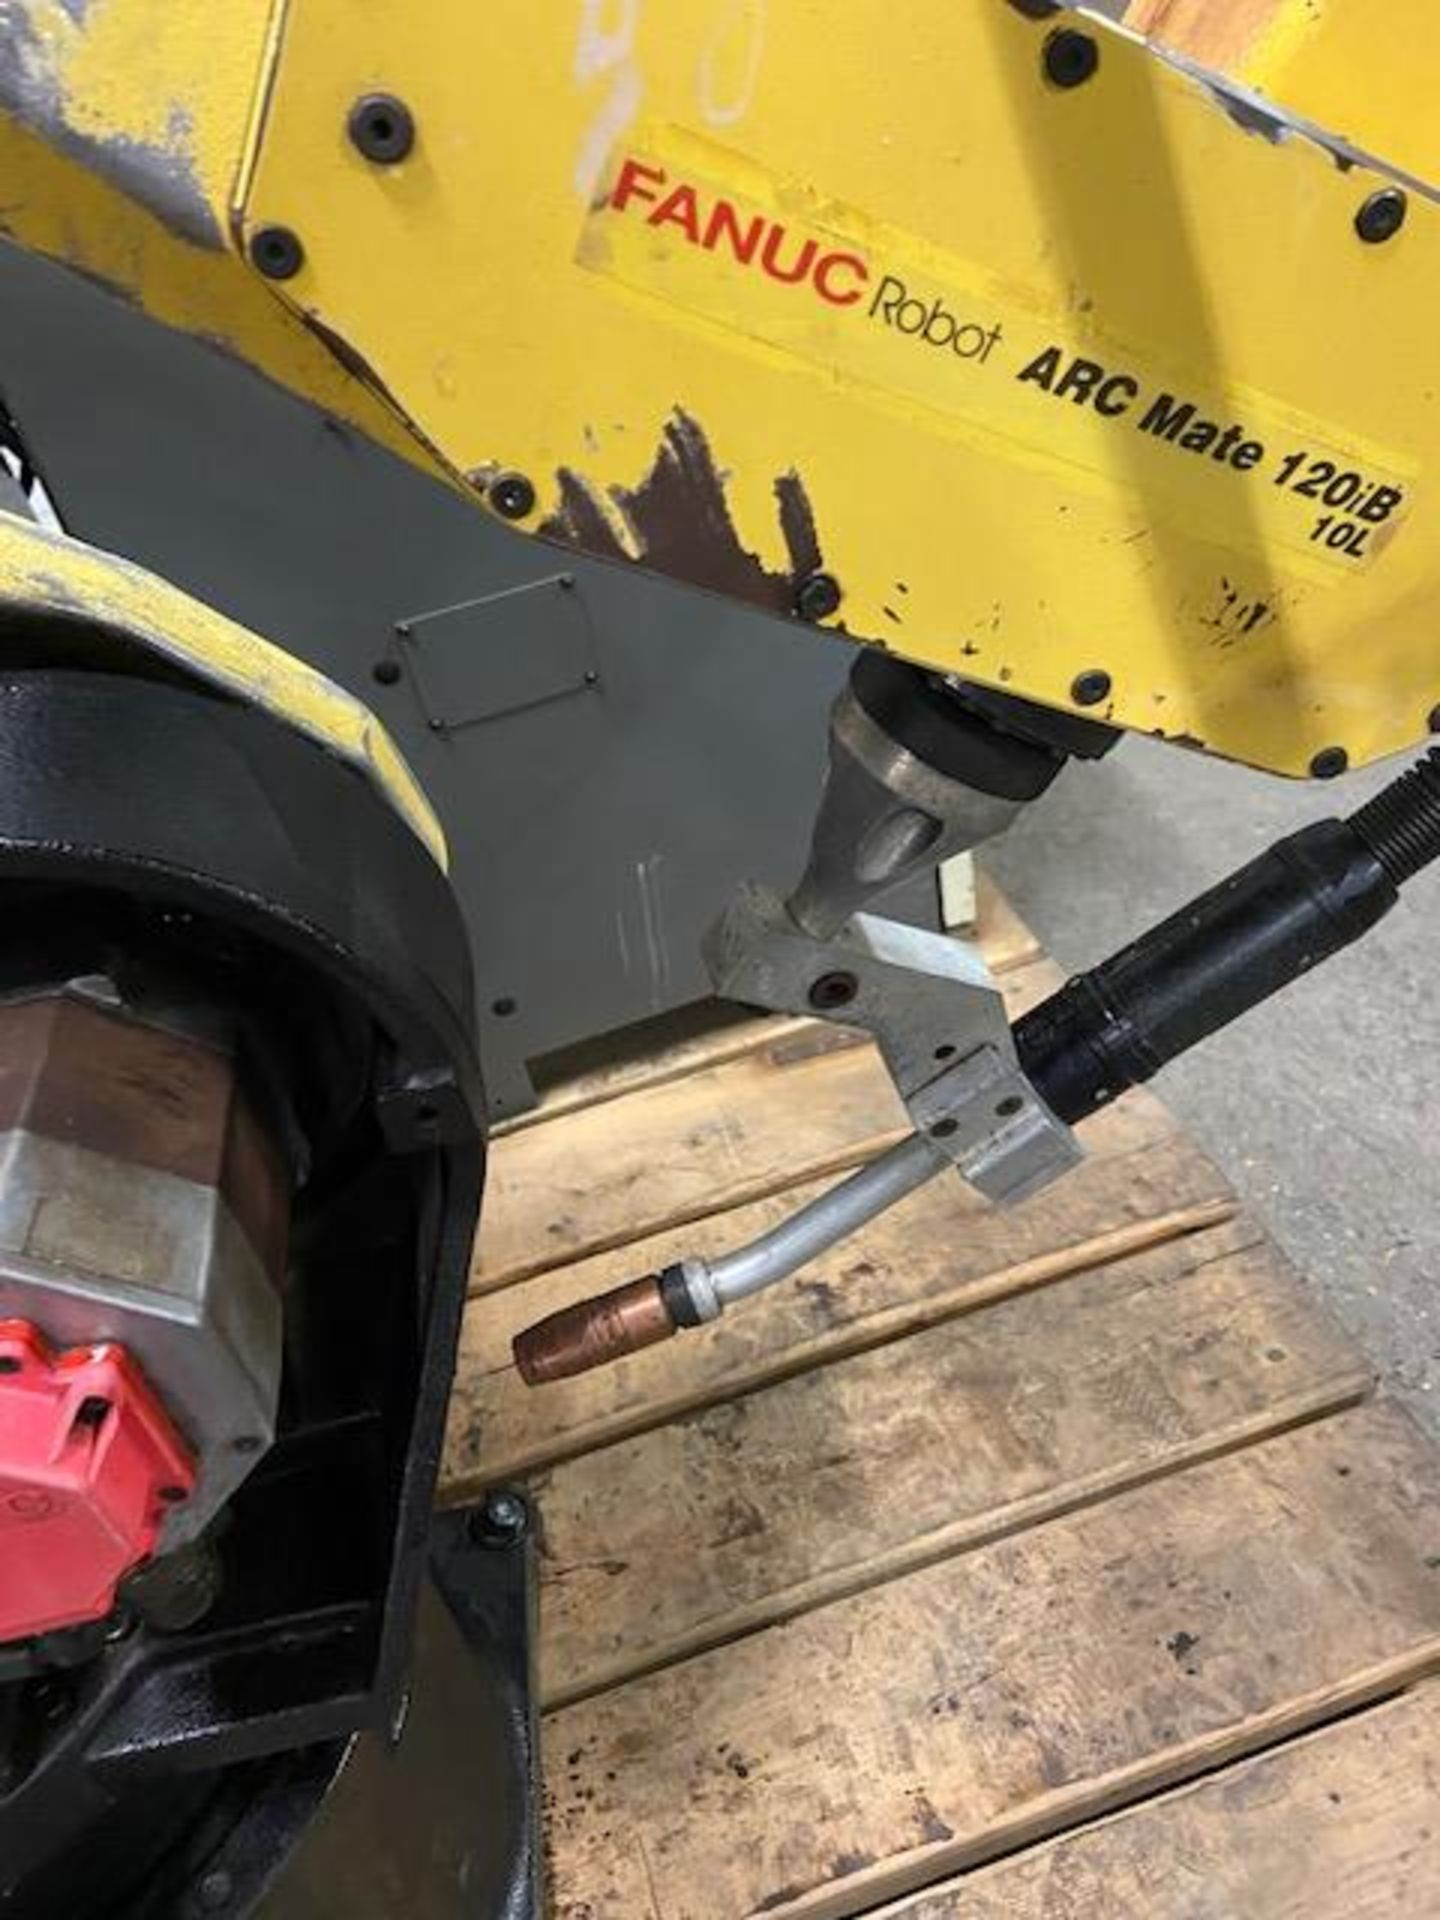 2008 Fanuc Arcmate 120iB / 10L Welding Robot with System FULLY TESTED with R30iA Controller, teach - Image 6 of 6